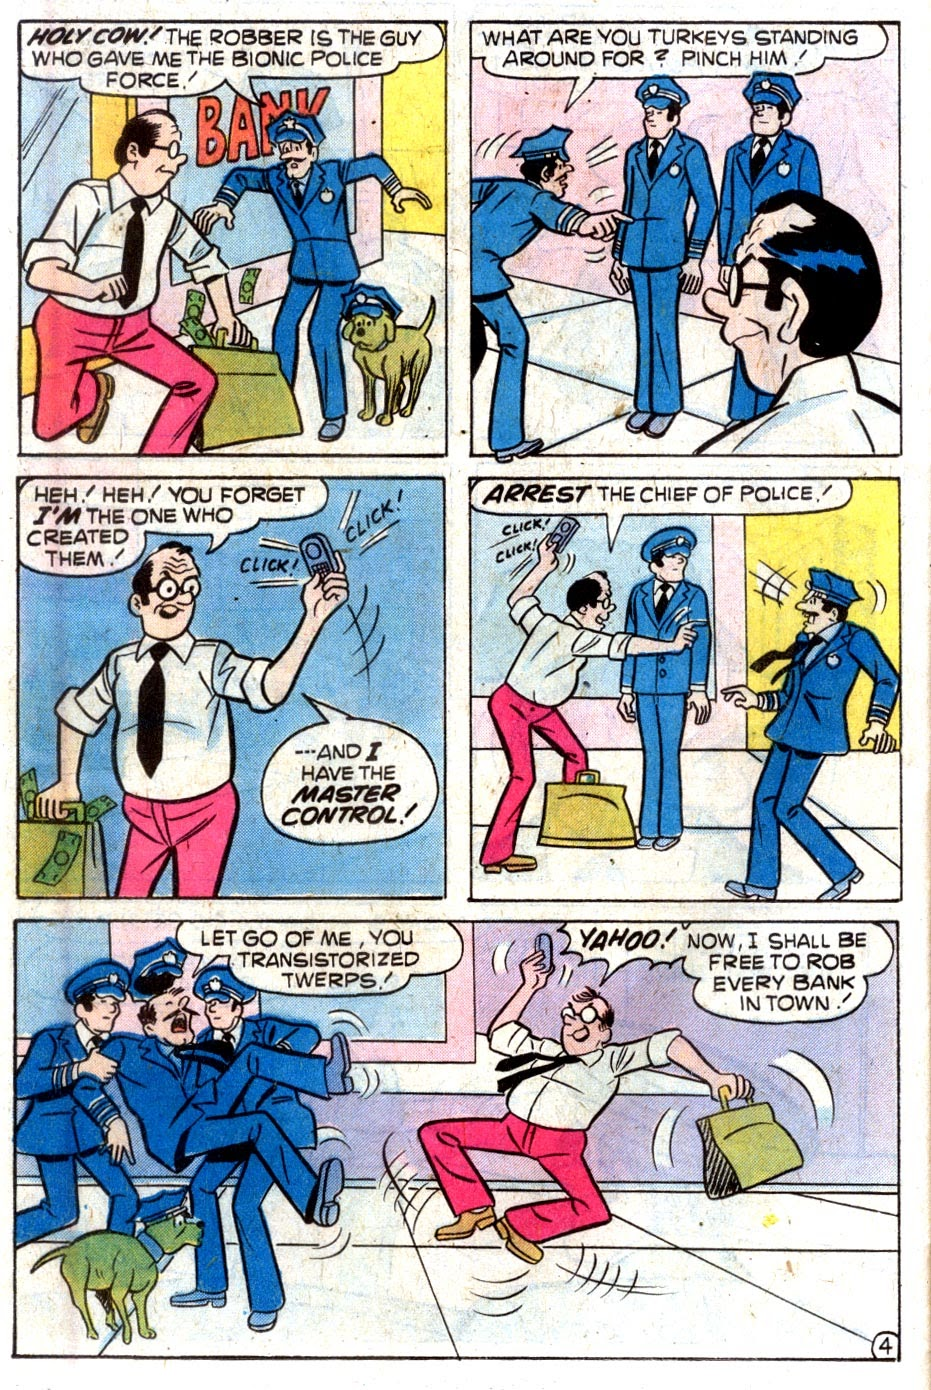 Read online Madhouse Comics comic -  Issue #110 - 16